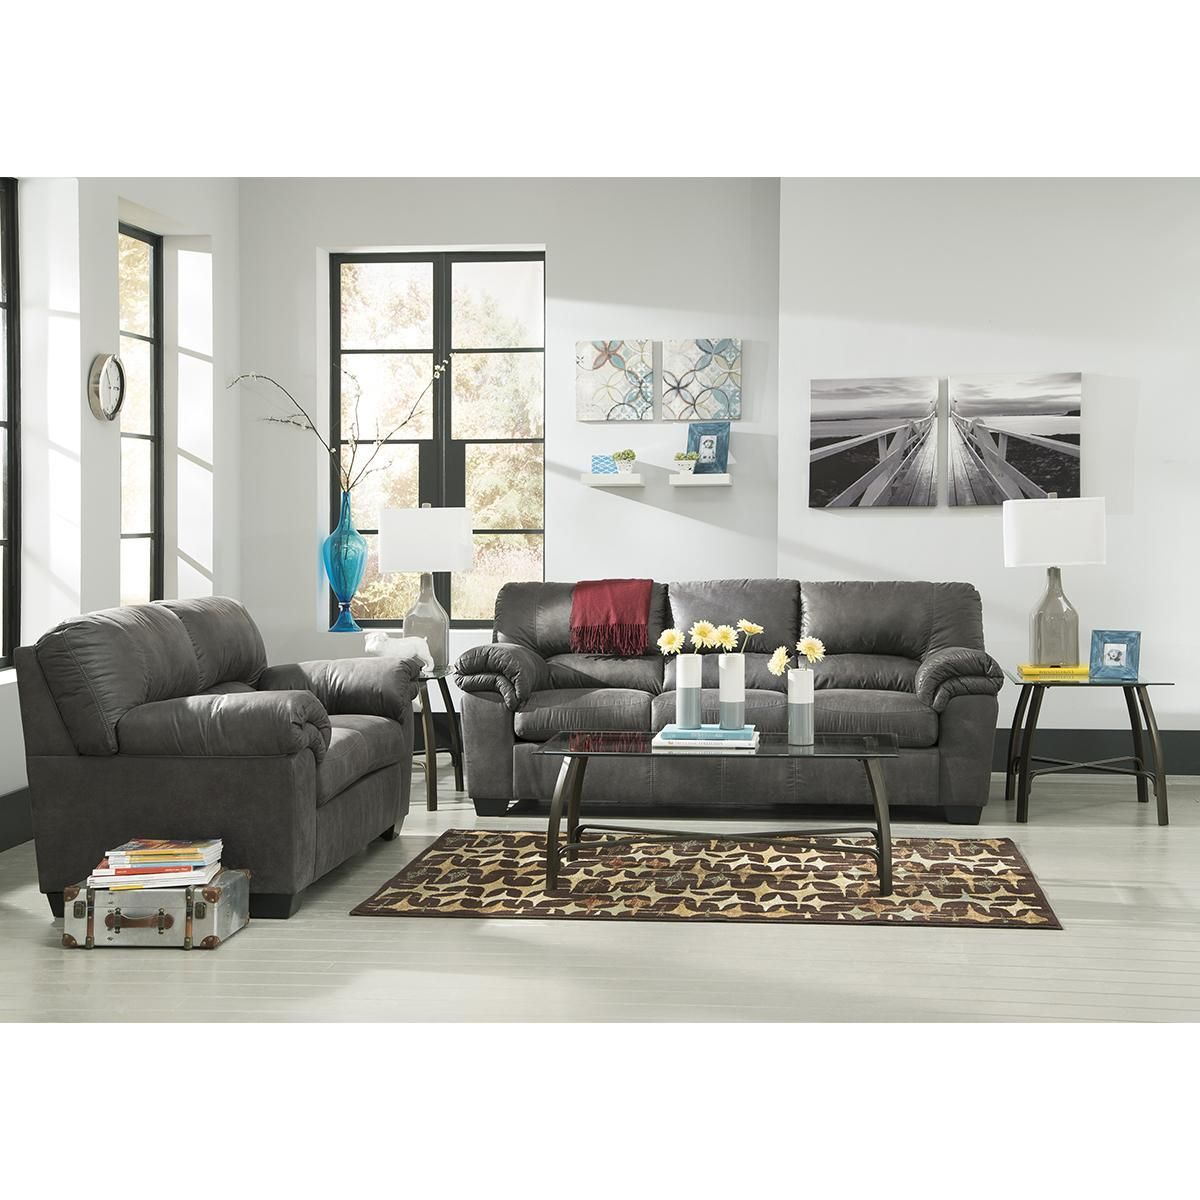 Chenault Brantley Collection Grey Sofa Loveseat Set Living Room Sets Sofa And Loveseat Set Cheap Living Room Sets